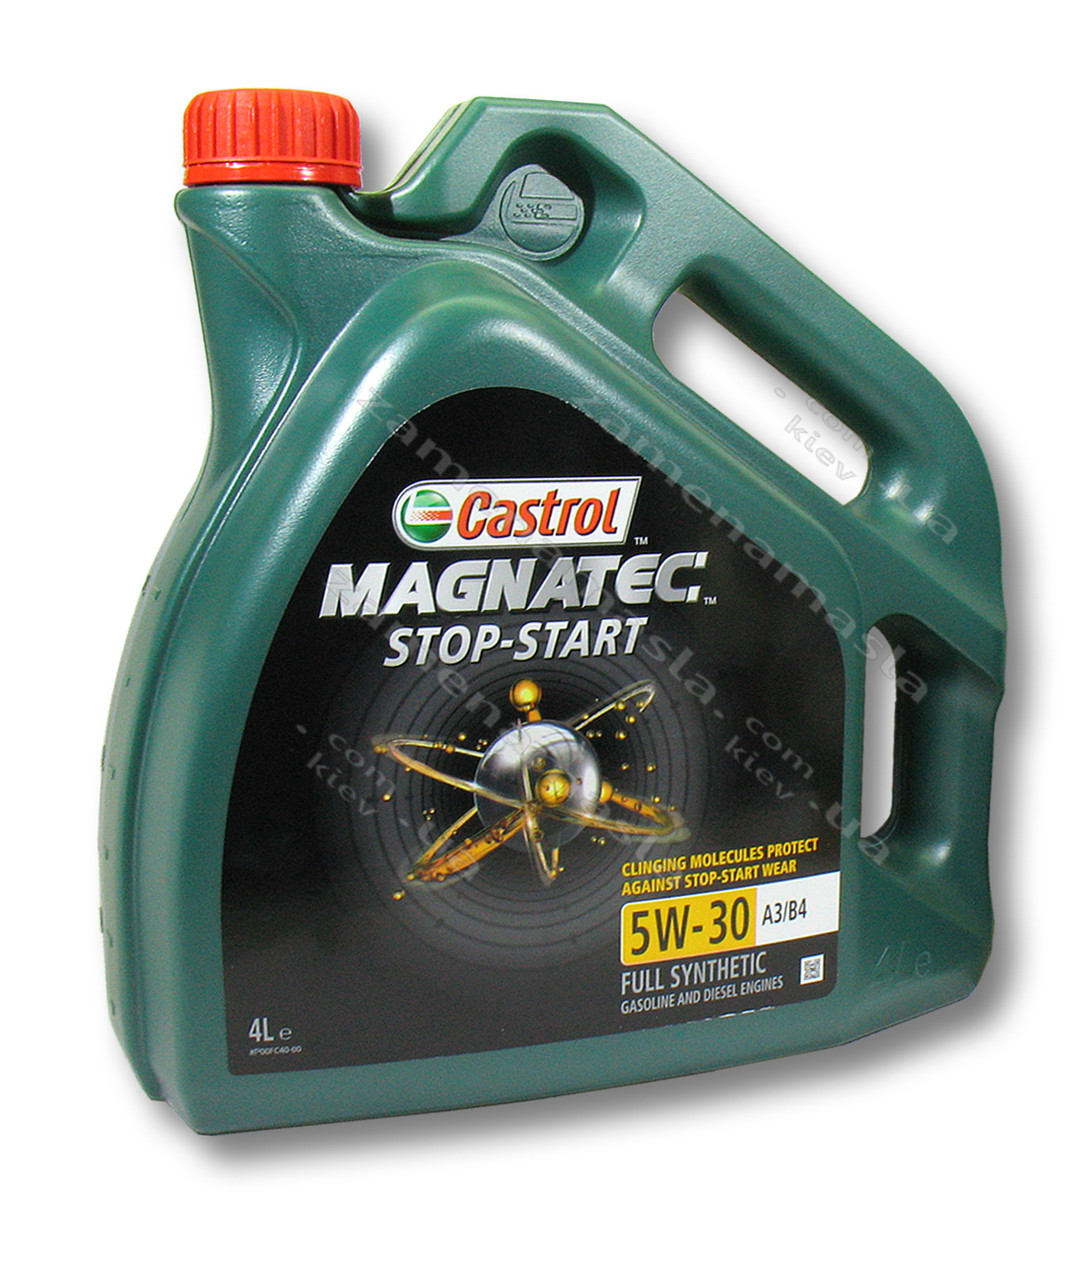 Castrol MAGNATEC STOP-START 5W-30 A3/B4 4л - моторное масло